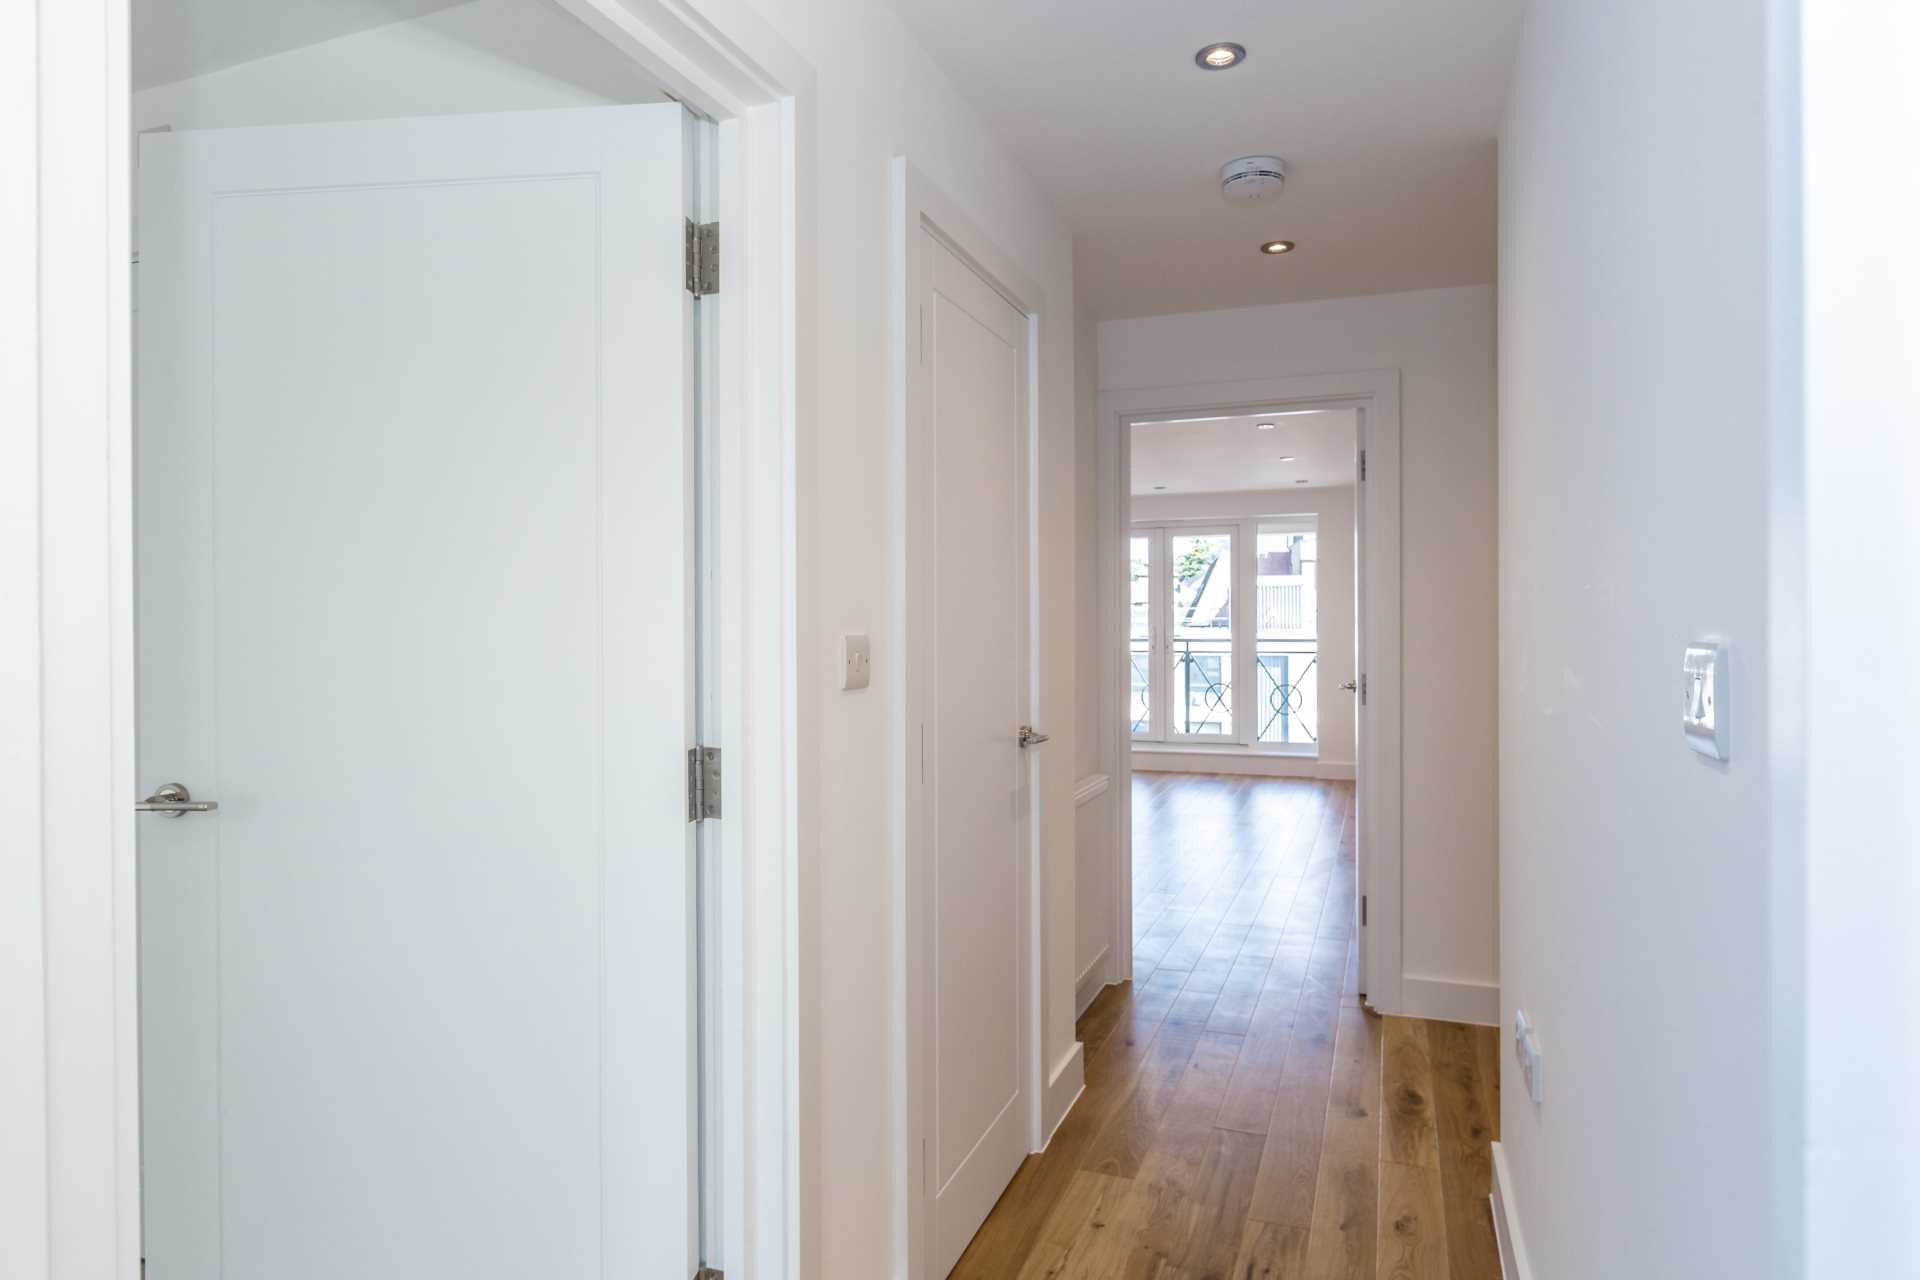 2 Bedroom Apartment To Rent Fairfield Road Brentwood Cm14 4lr